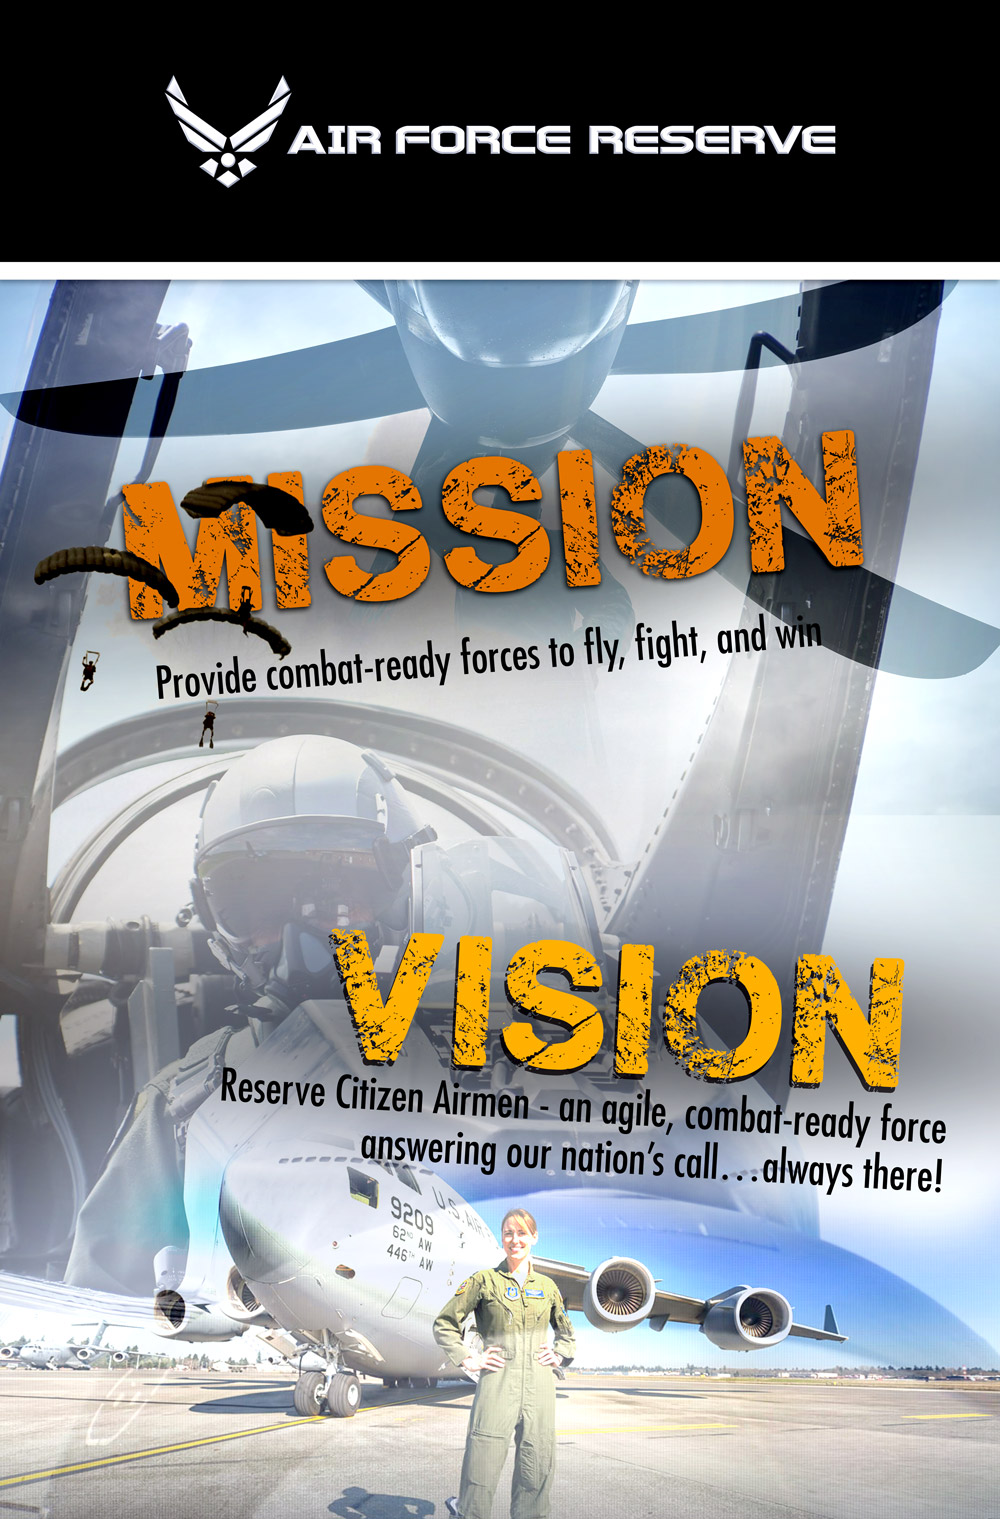 AFR Mission and Vision Statement